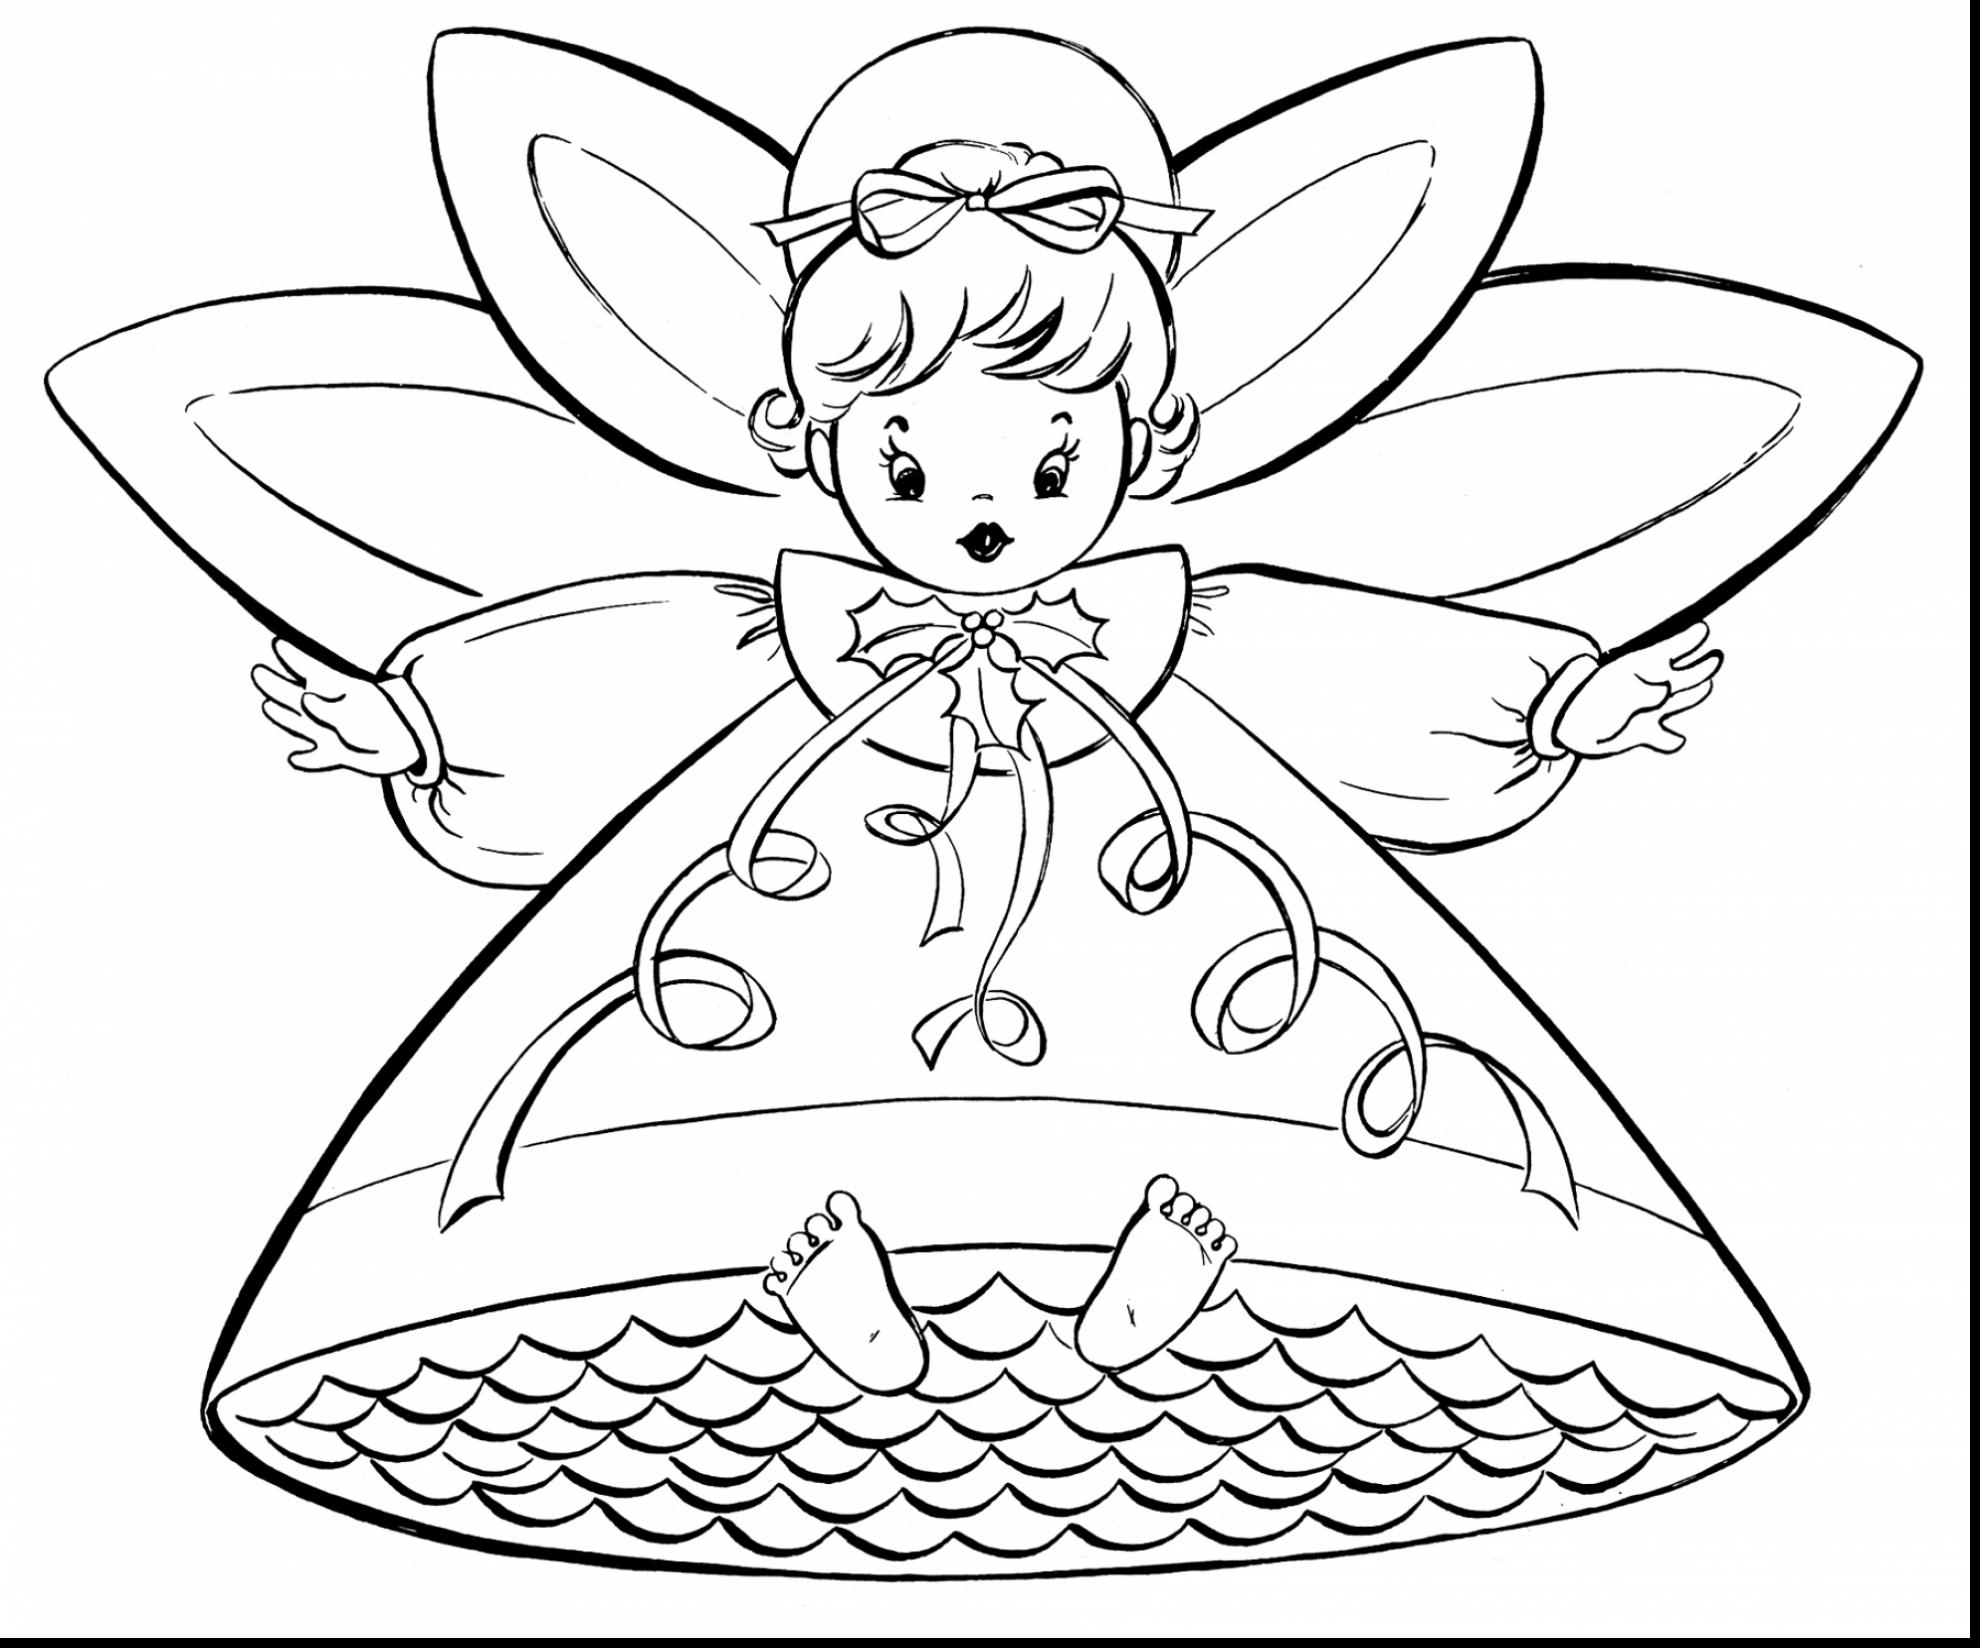 1980x1648 Wonderful Angel Coloring Pages Free Christmas Retro Angels